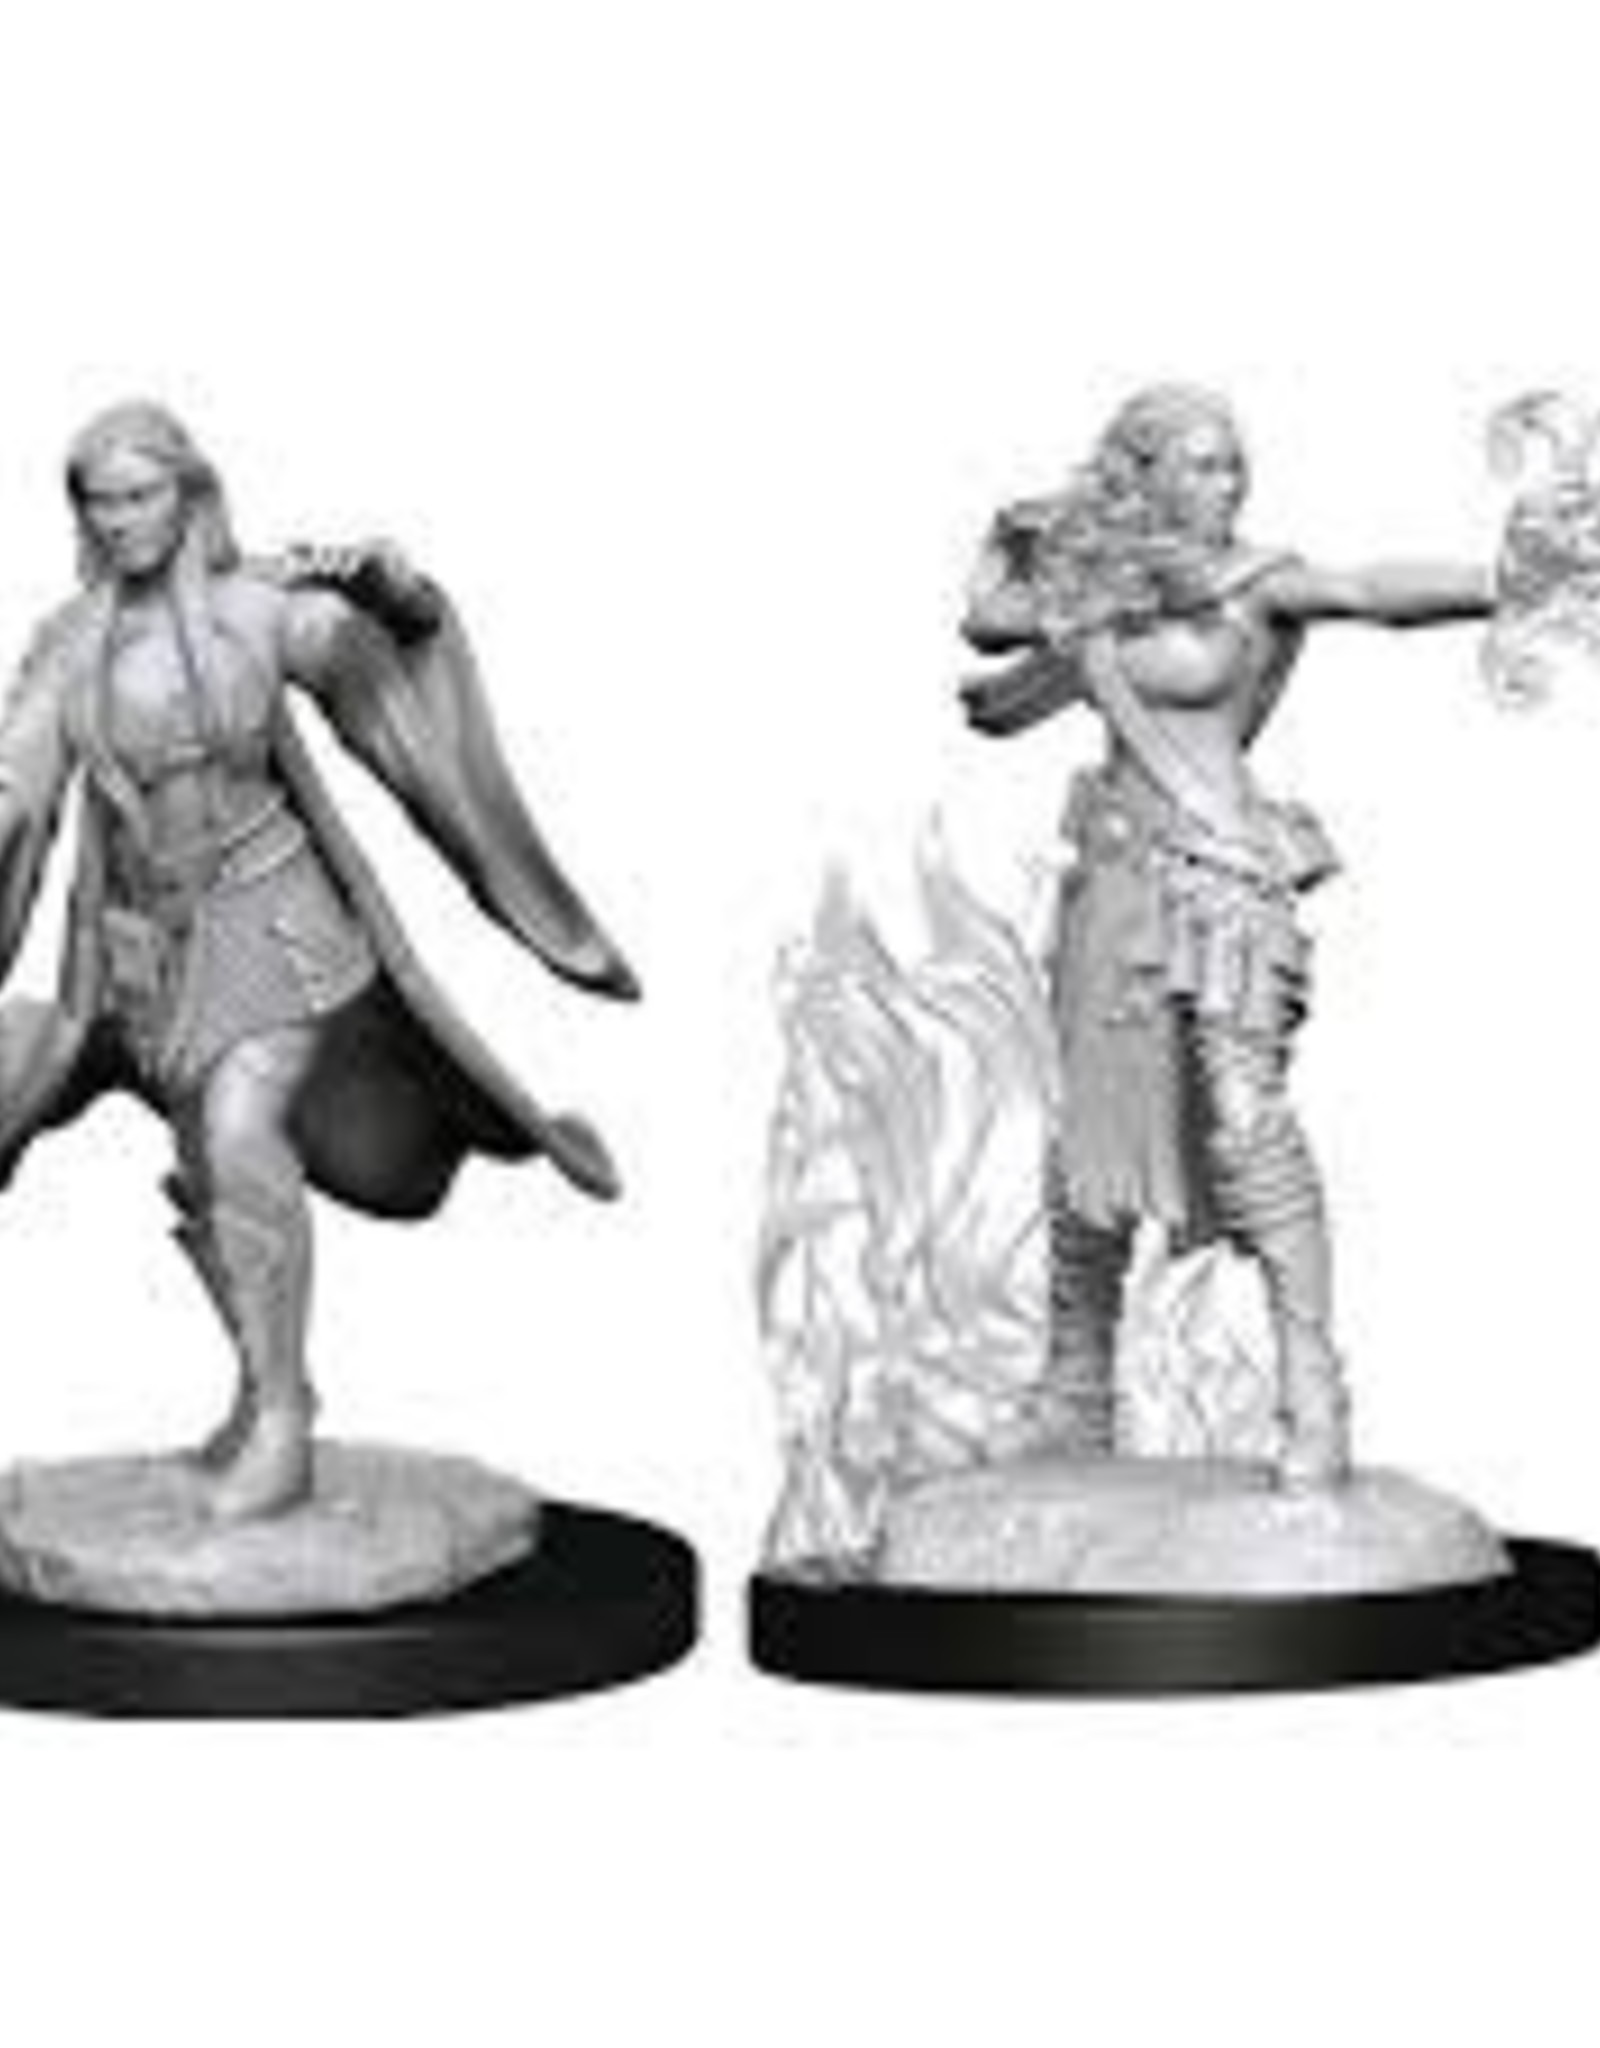 WizKids D&D Nolzur Multiclass Warlock/Sorcerer (She/Her/They/Them)